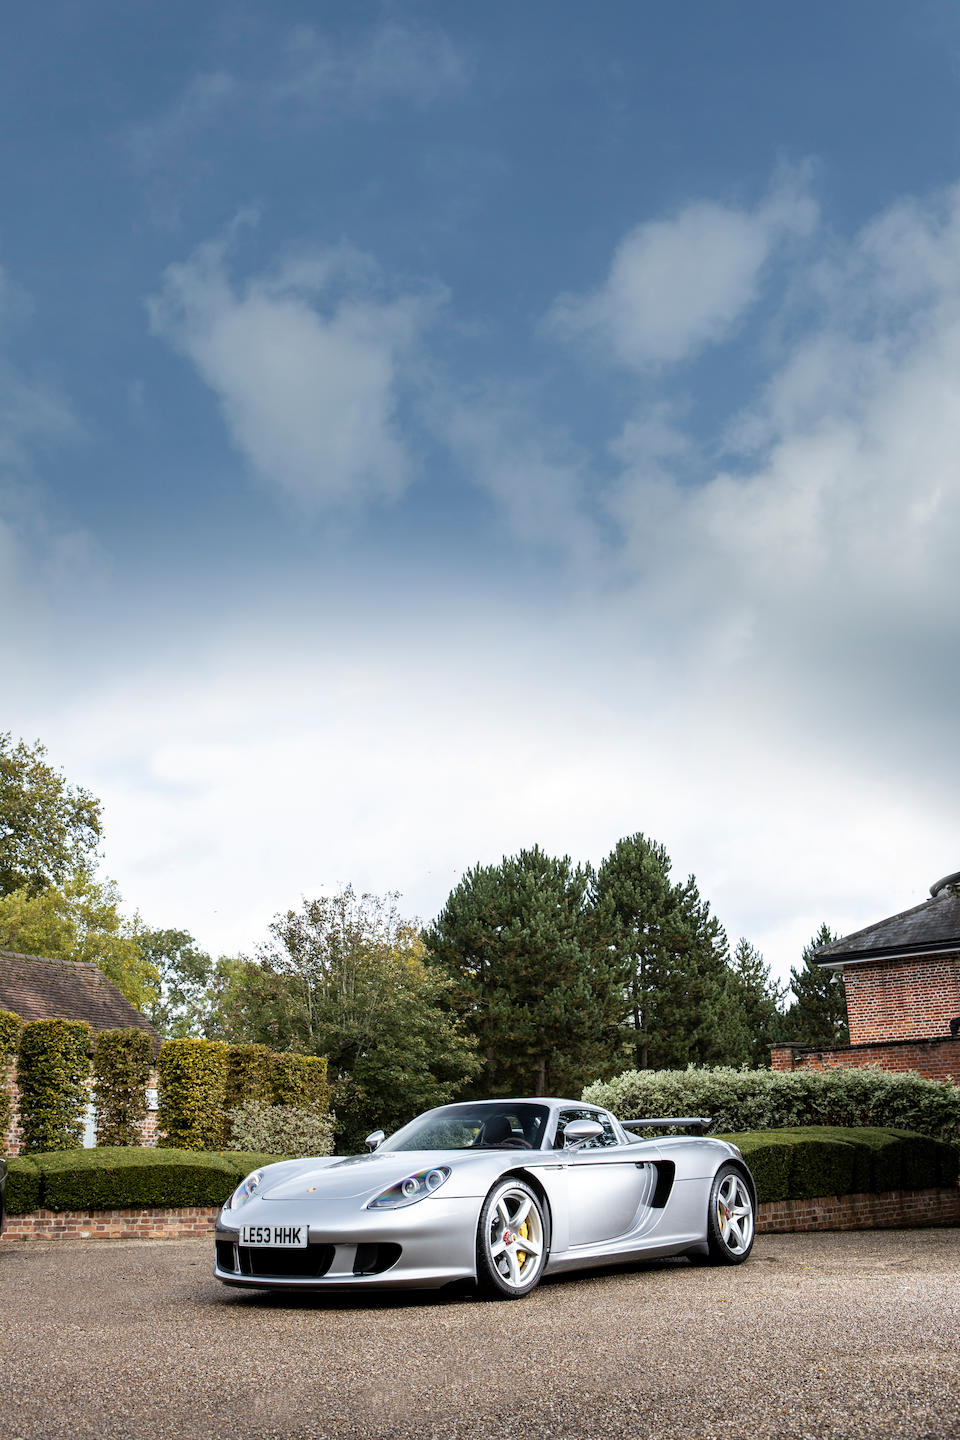 Offered from the collection of Jay Kay. 2,400 miles from new,2004 Porsche Carrera GT  Chassis no. WP0ZZZ98Z4L000146